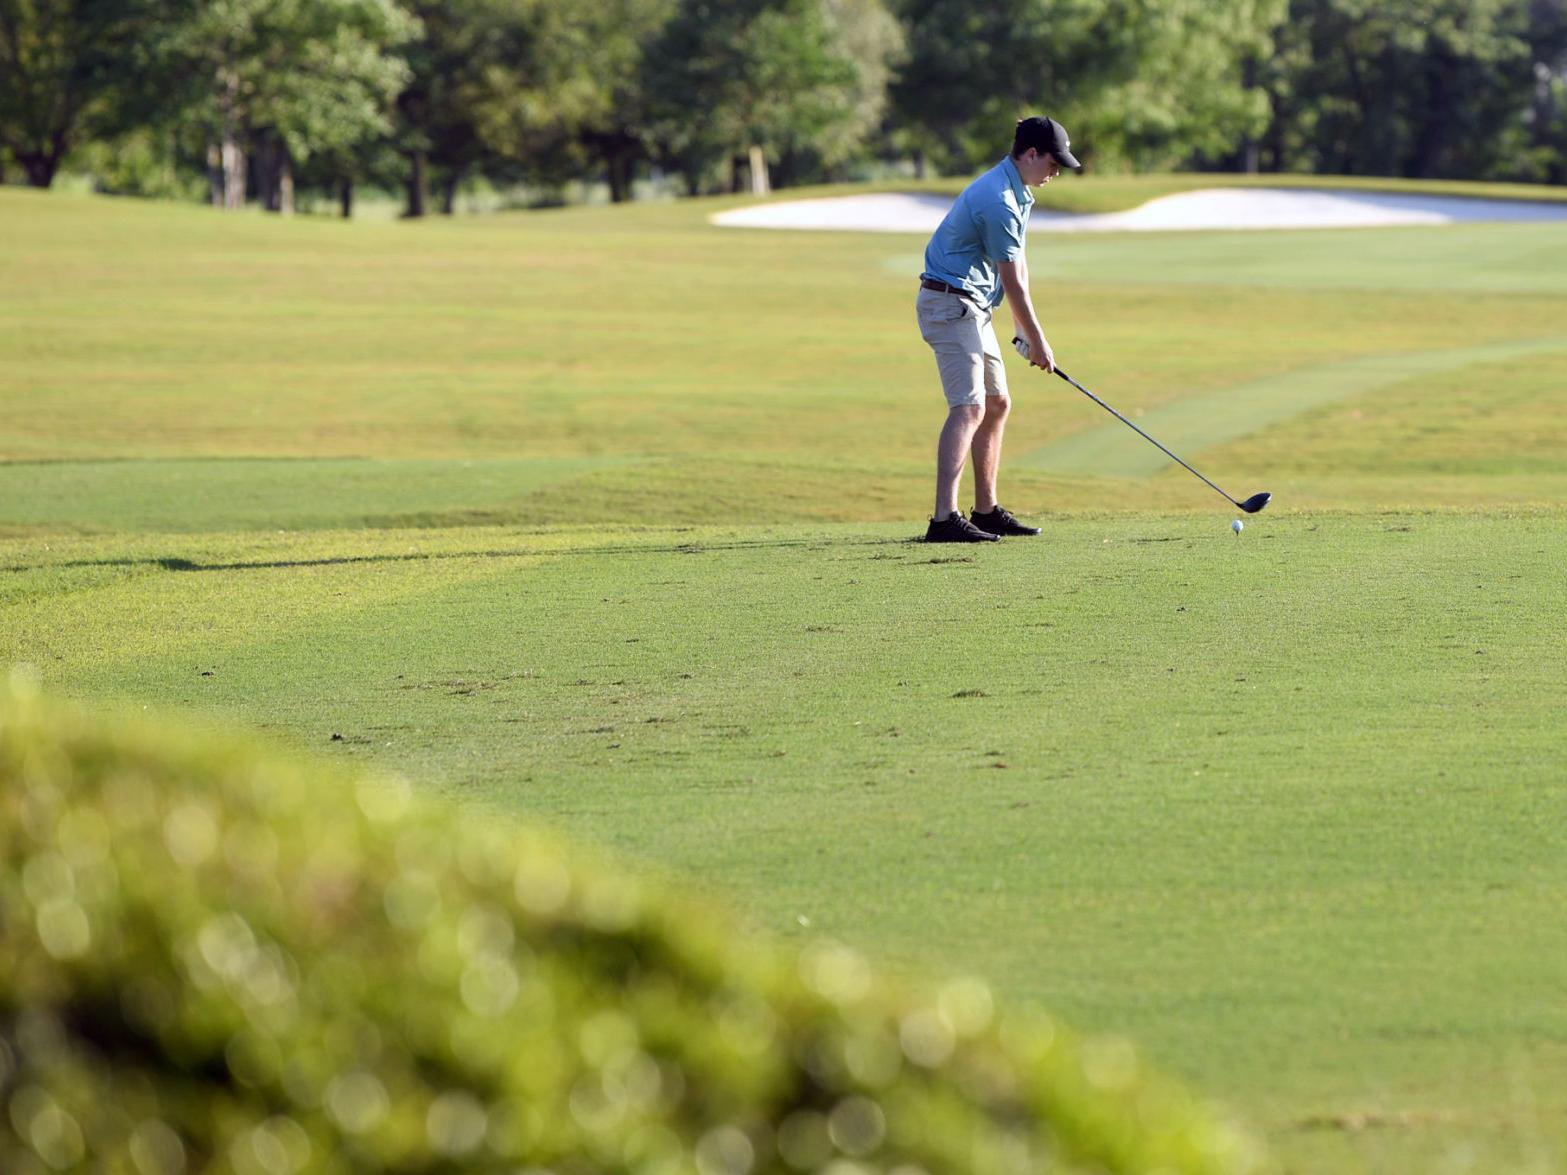 Most Local Golf Courses Still Open But Using Different Guidelines For Players City Course At Phillips Center To Open Soon For General Public Sports News Theeagle Com